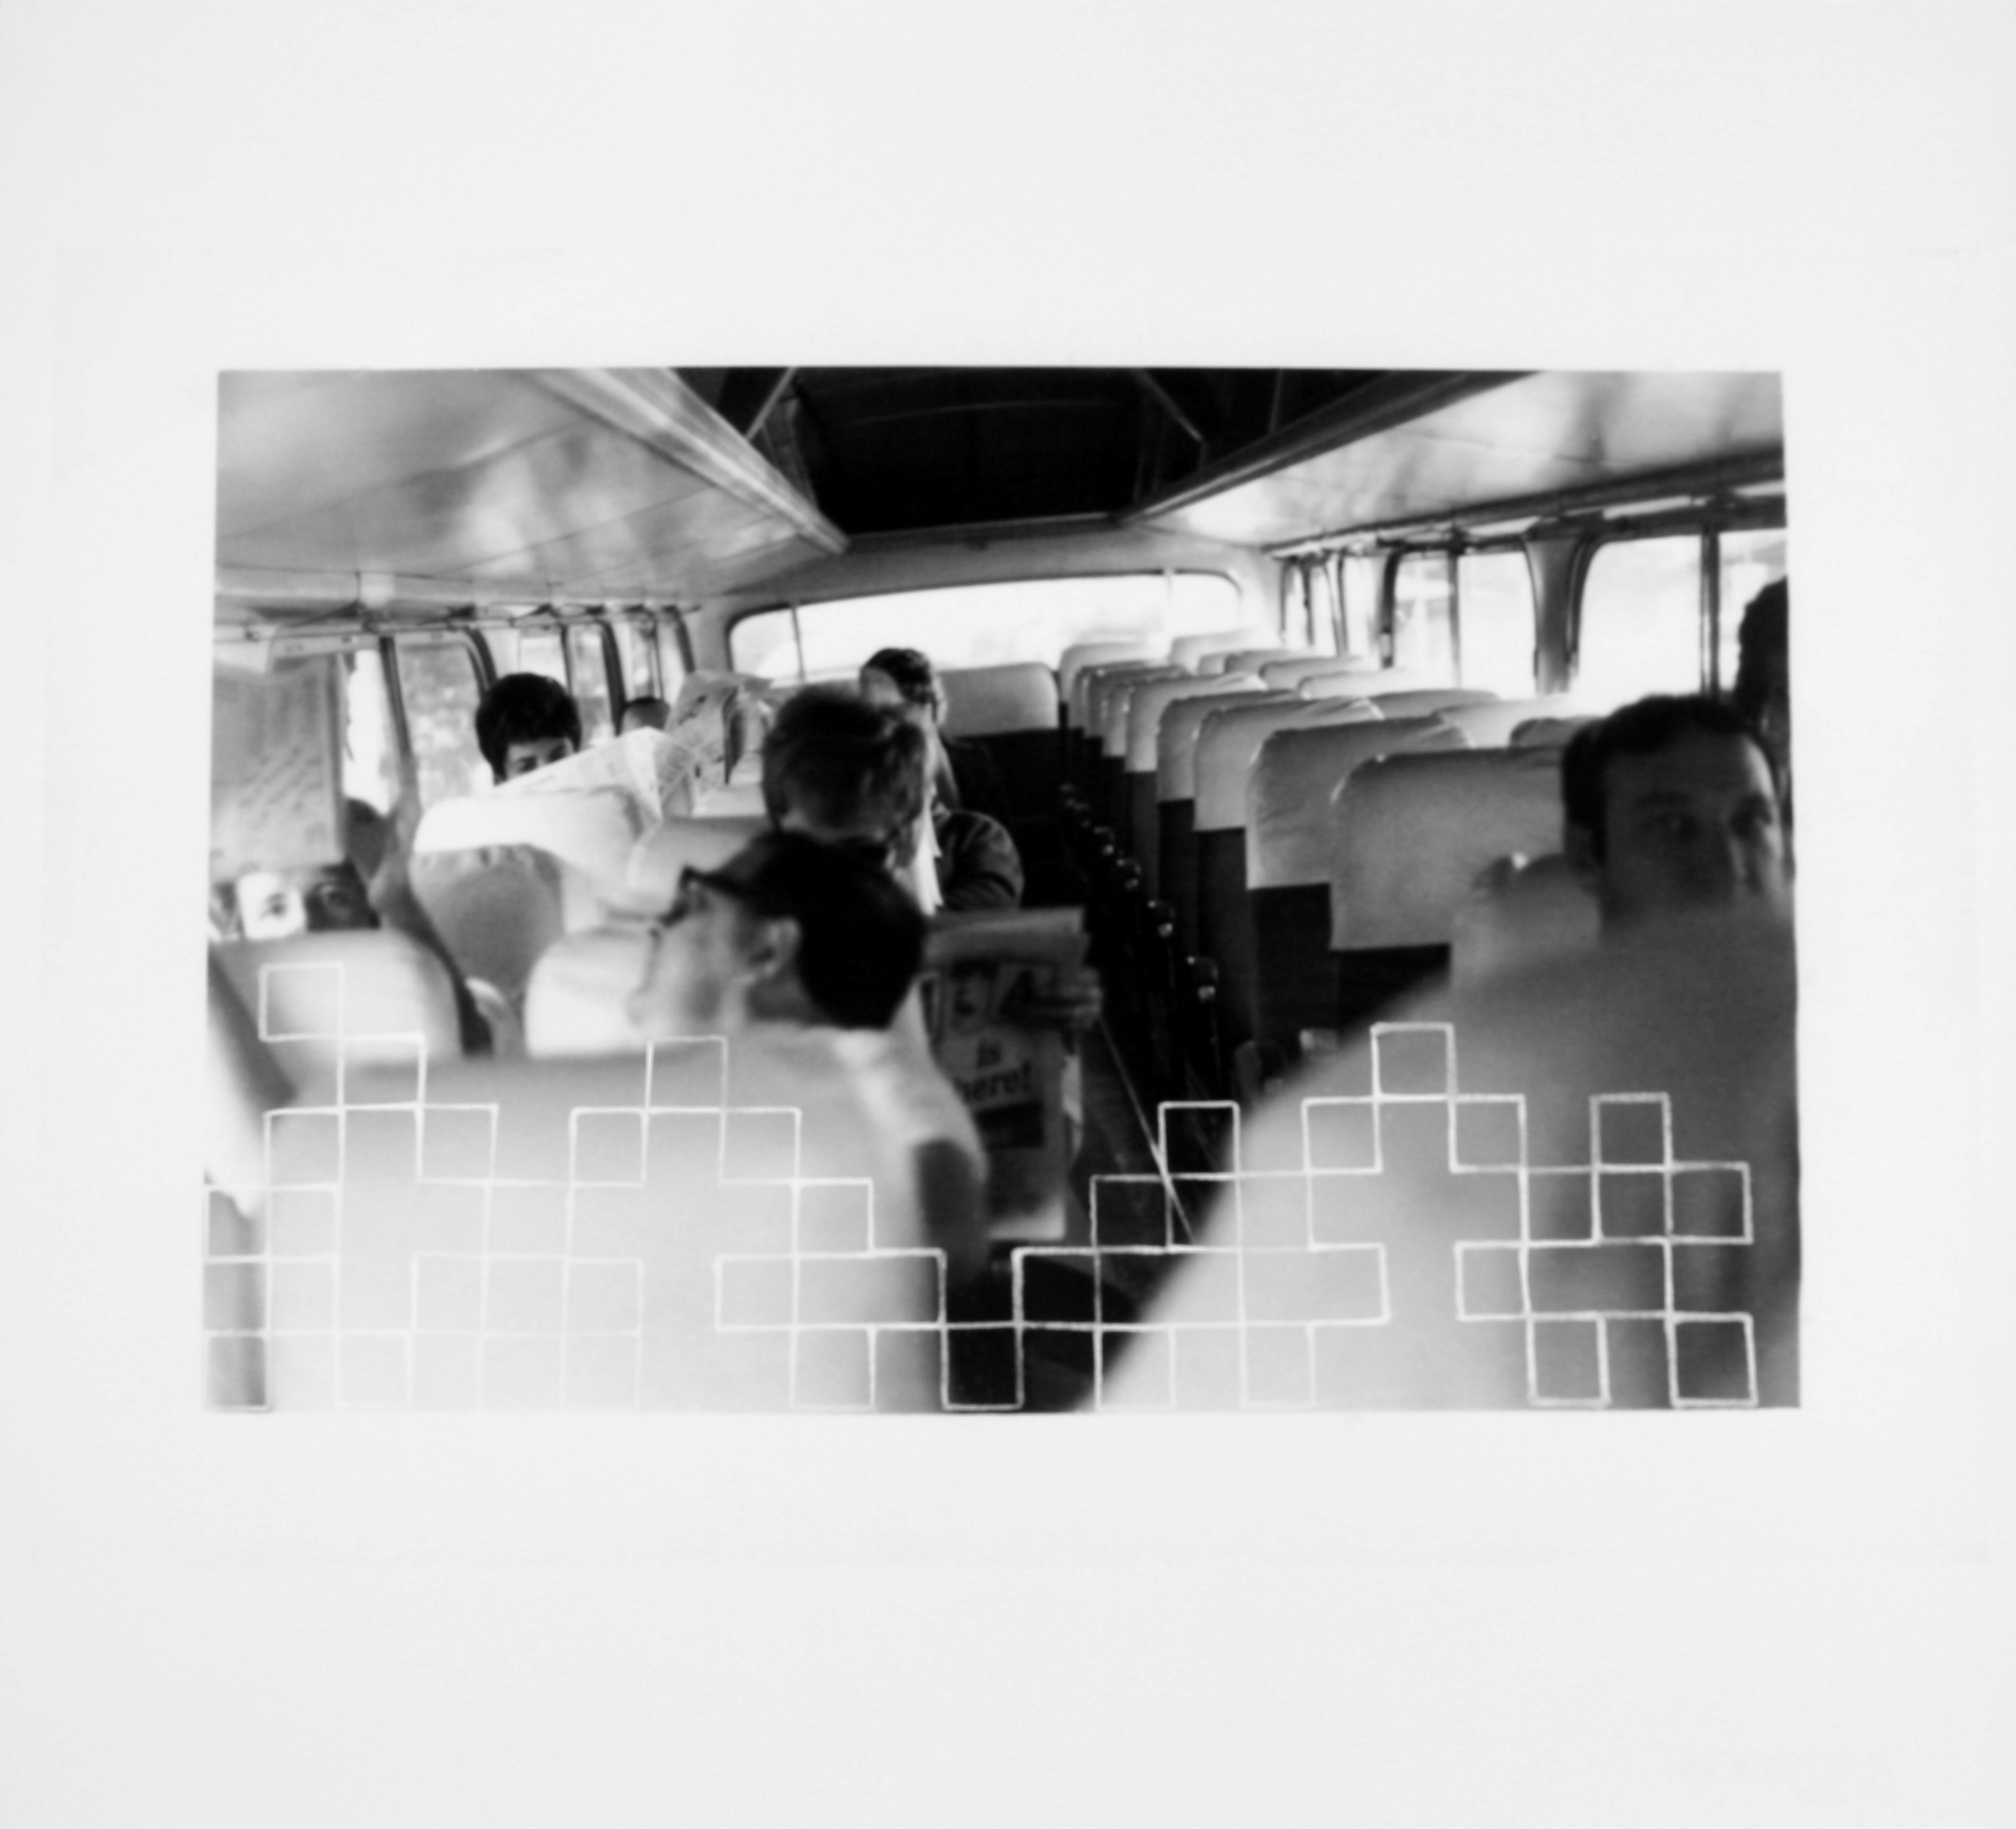 Recollection Drawn: Bus Ride